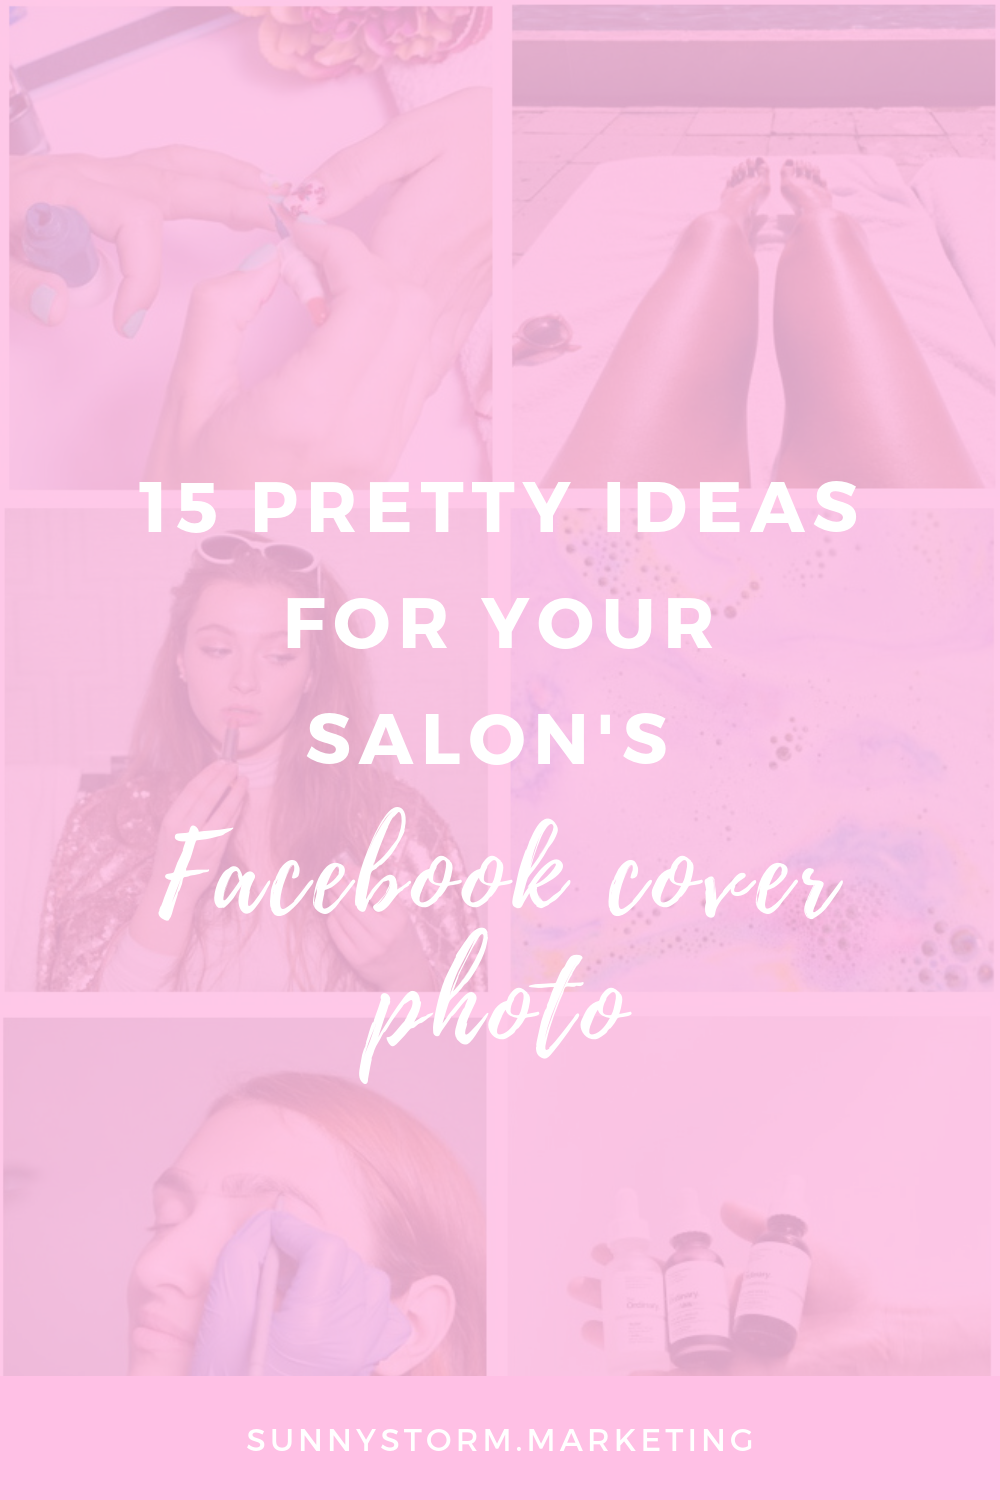 Facebook cover photos for salons: Promoting your beauty business